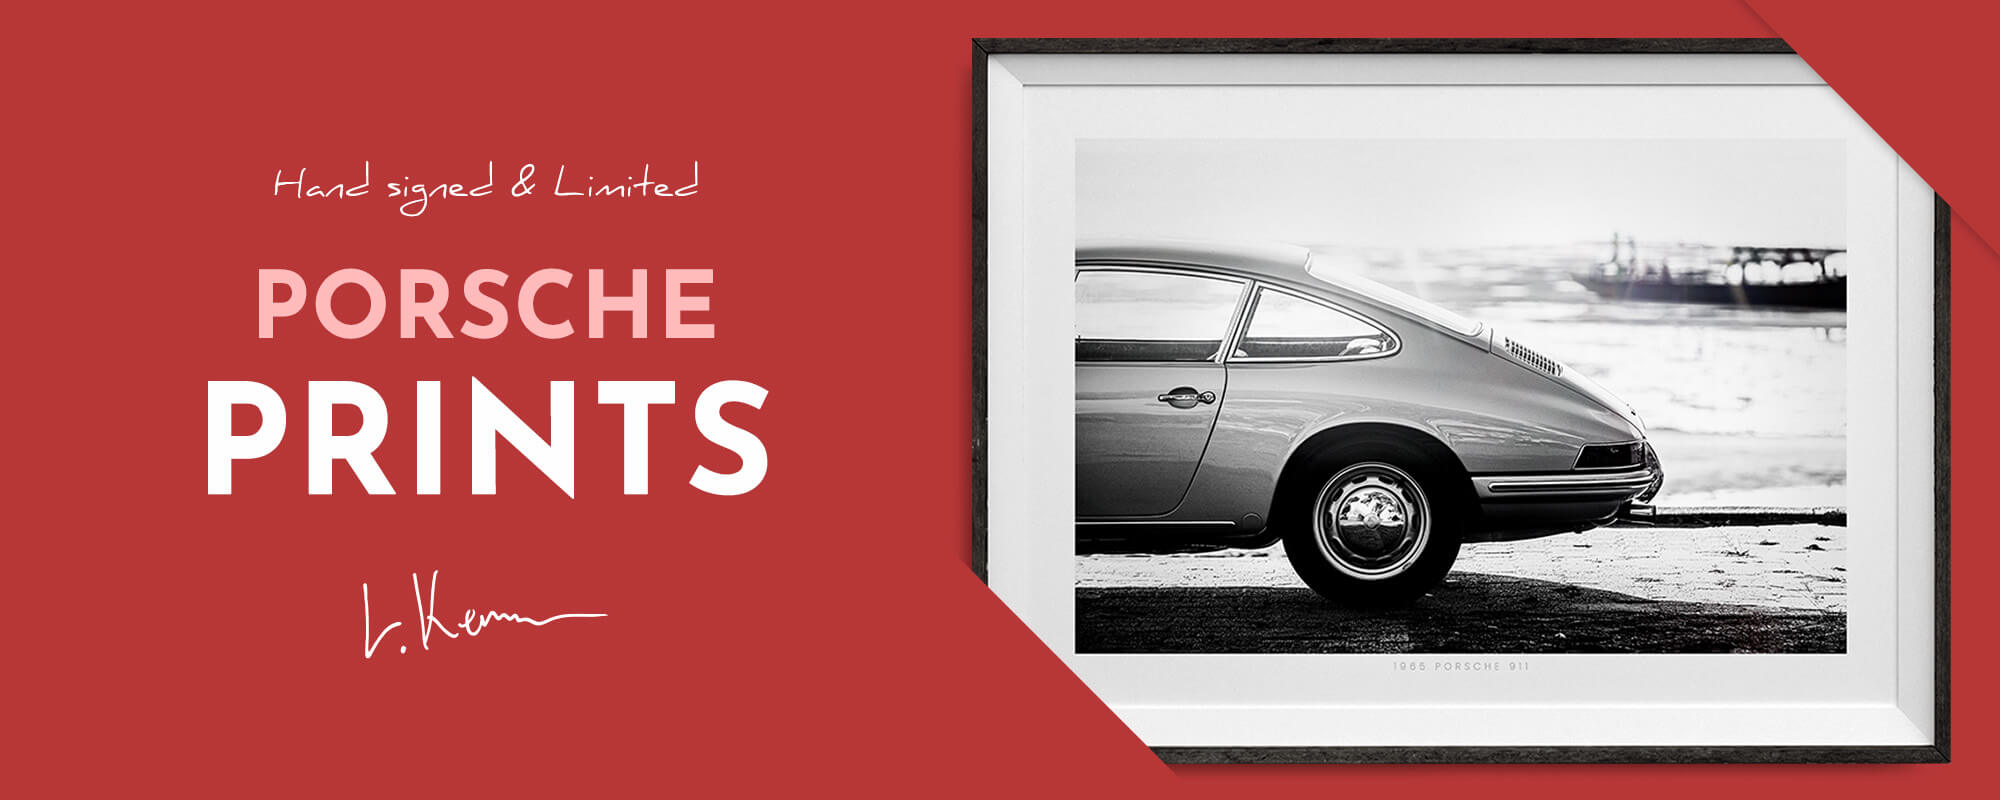 Porsche Gifts, Wall Decor and Fine Art Photo Prints for Porsche enthusiasts